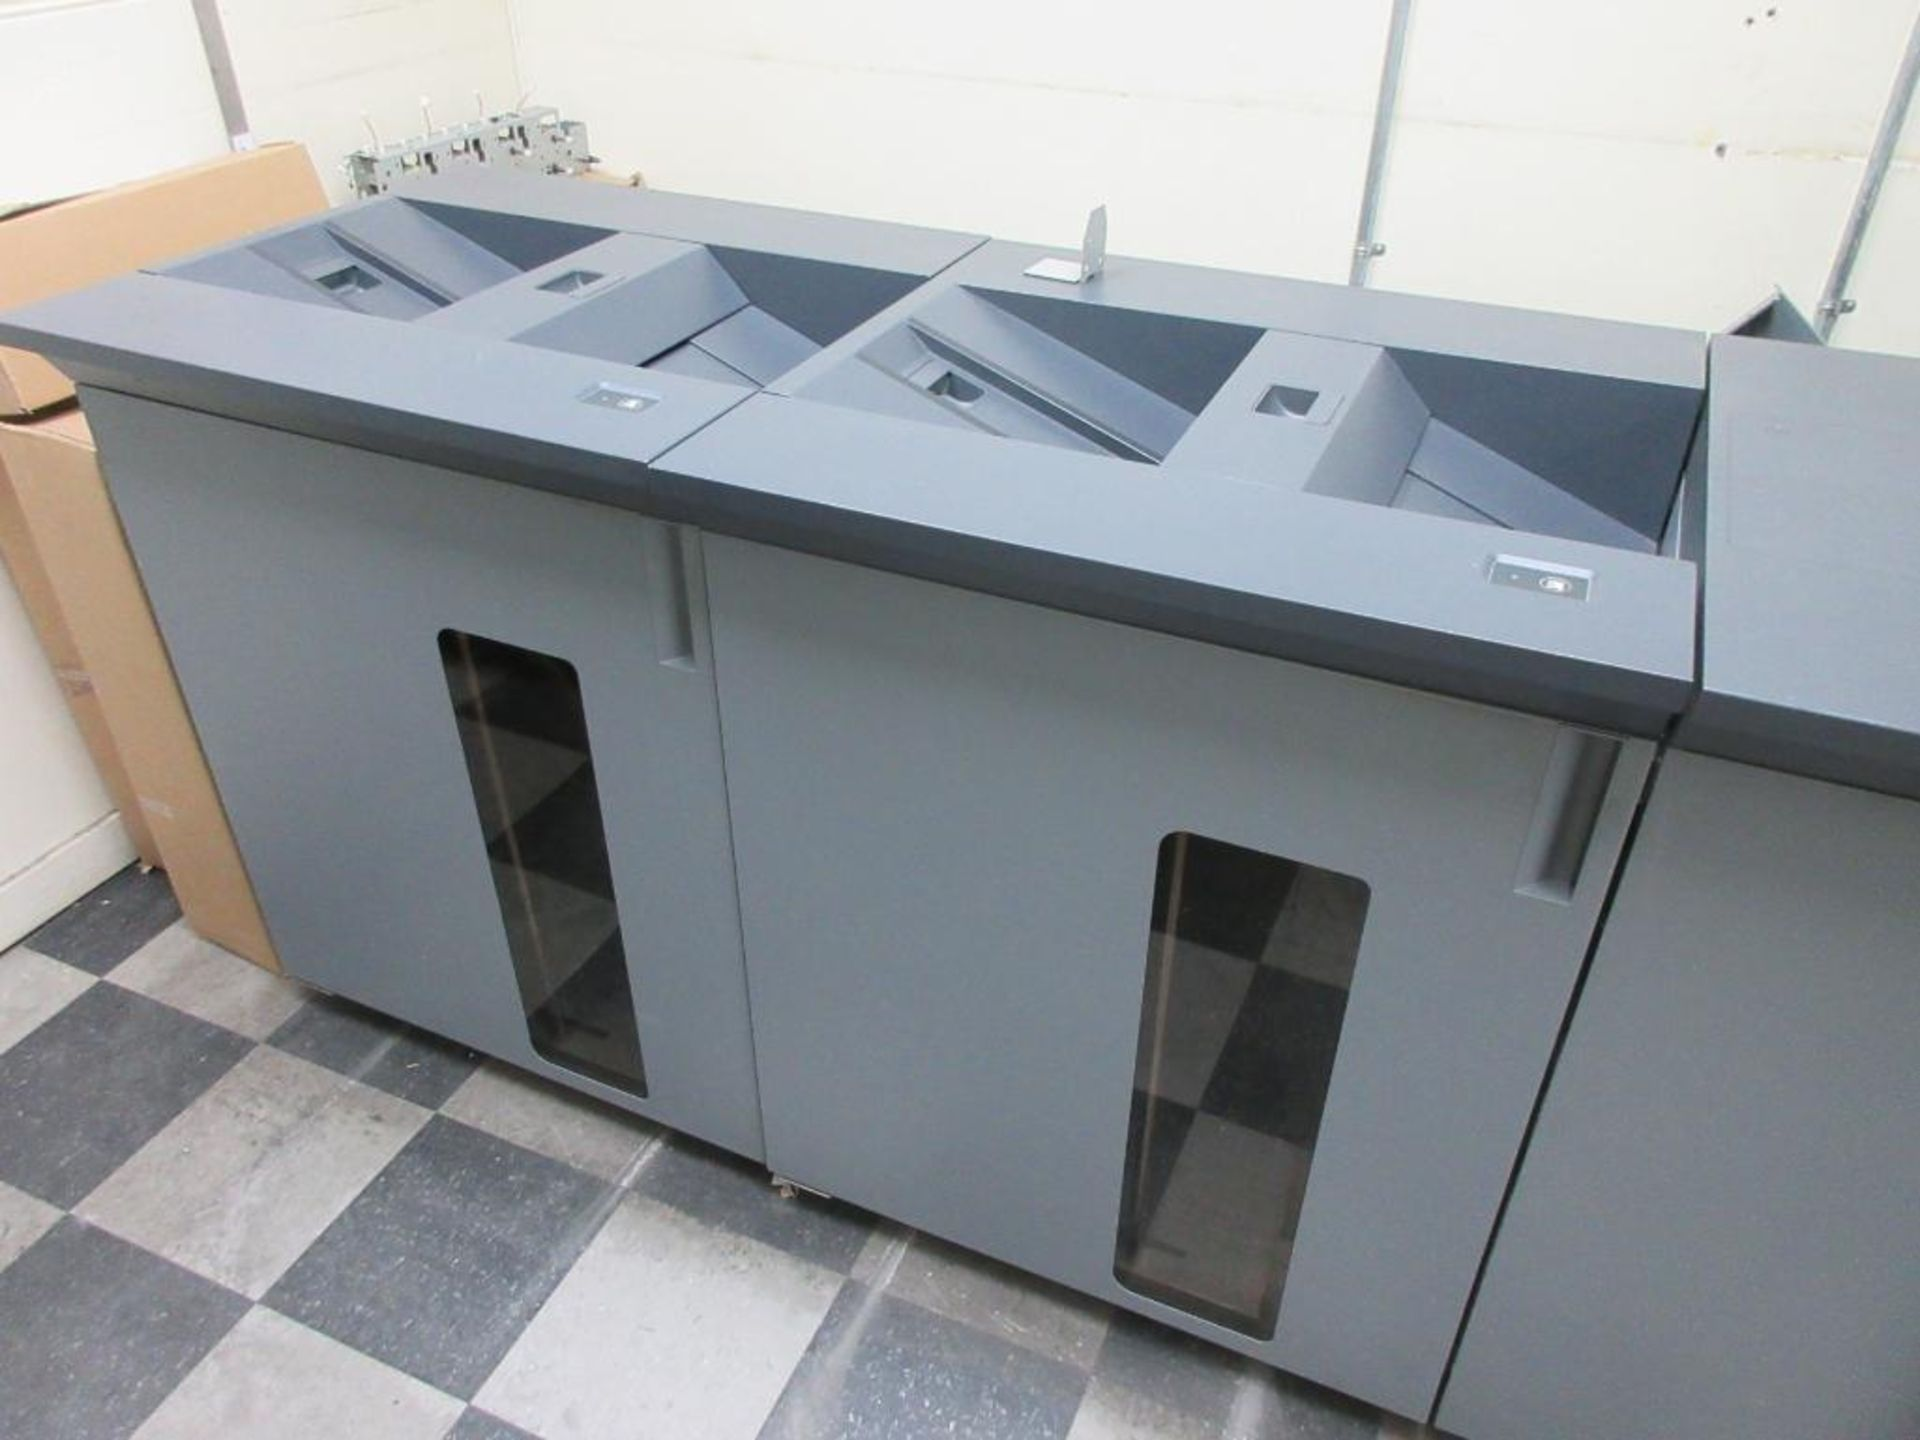 Konica Minolta Digital Press model bizhub press C8000 full colour & B/W 0 PPM capacity, components: - Image 6 of 14